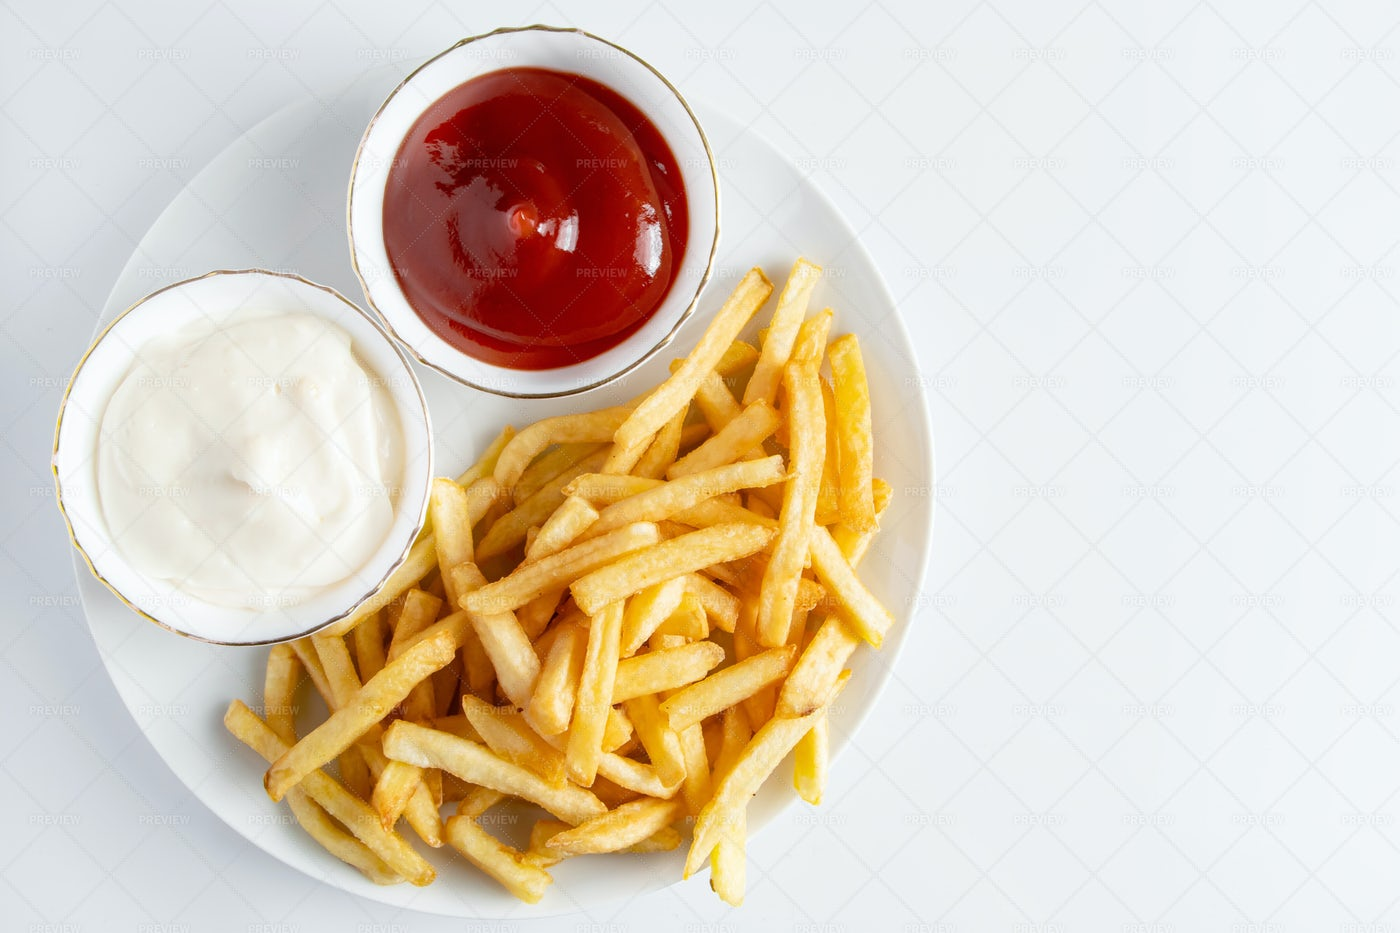 French Fries Background With Copy Space: Stock Photos